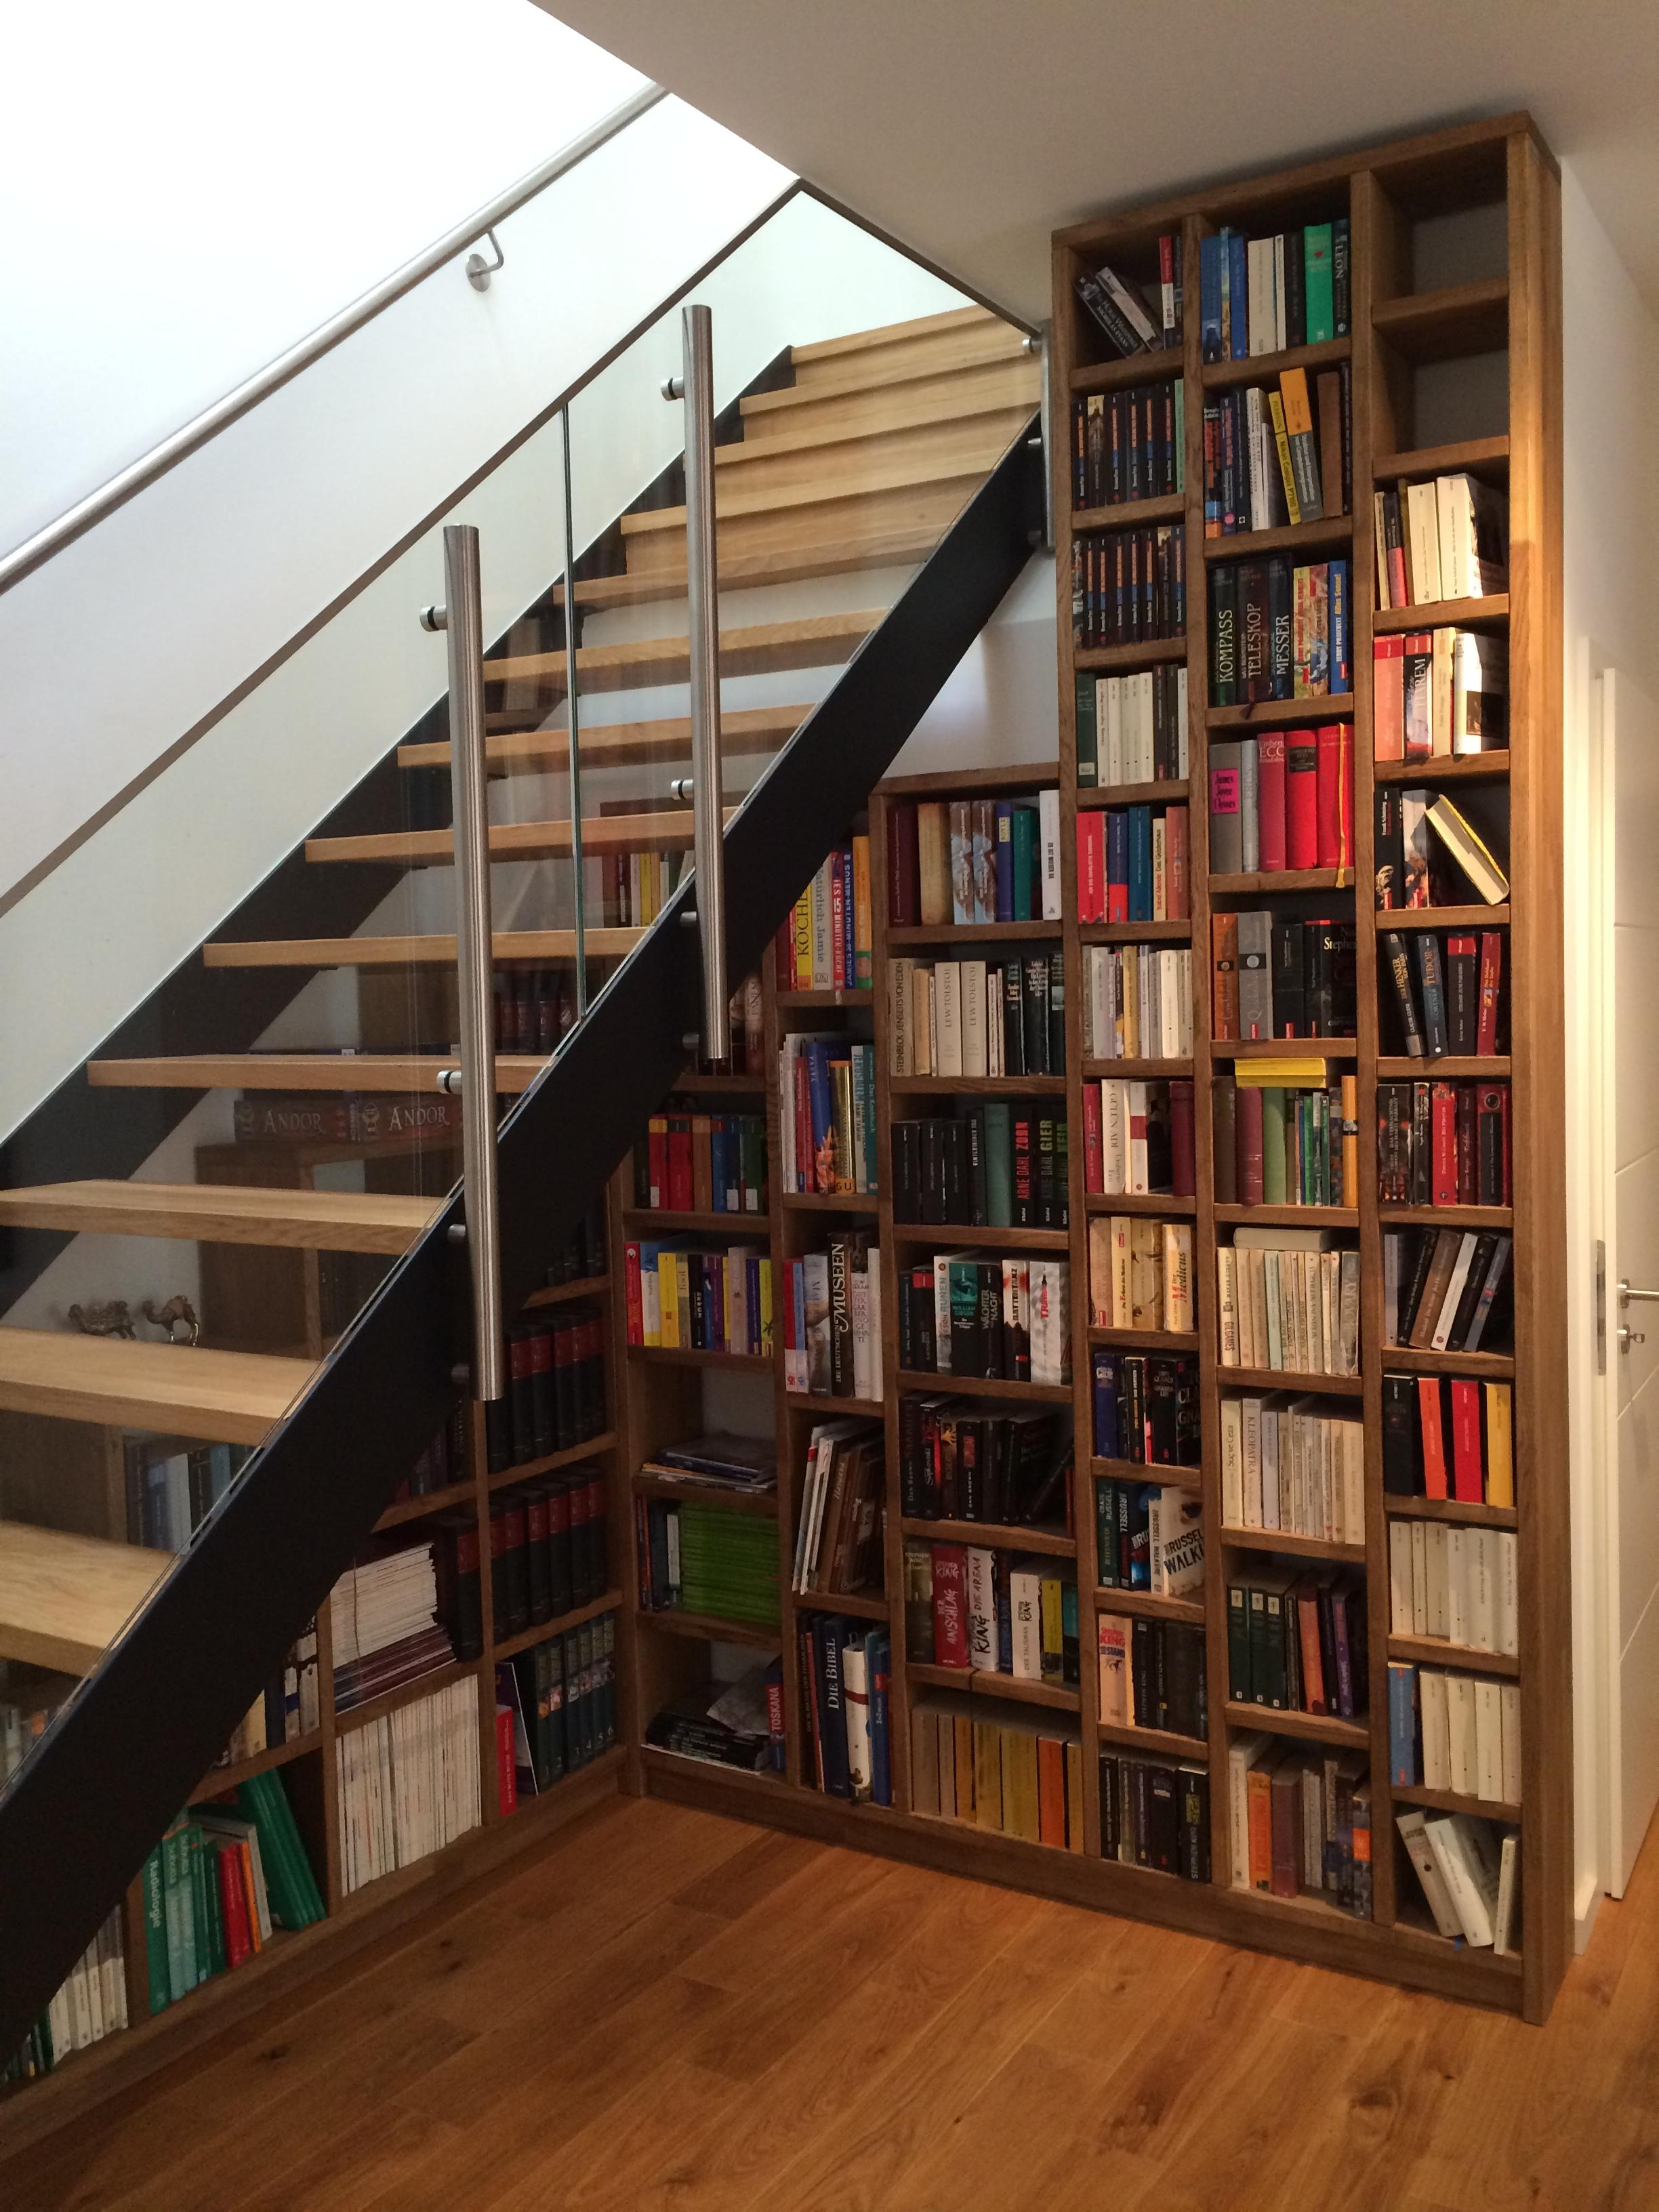 Holziger Platzsparer #regal #bücherregal #stauraum ©Pickawood